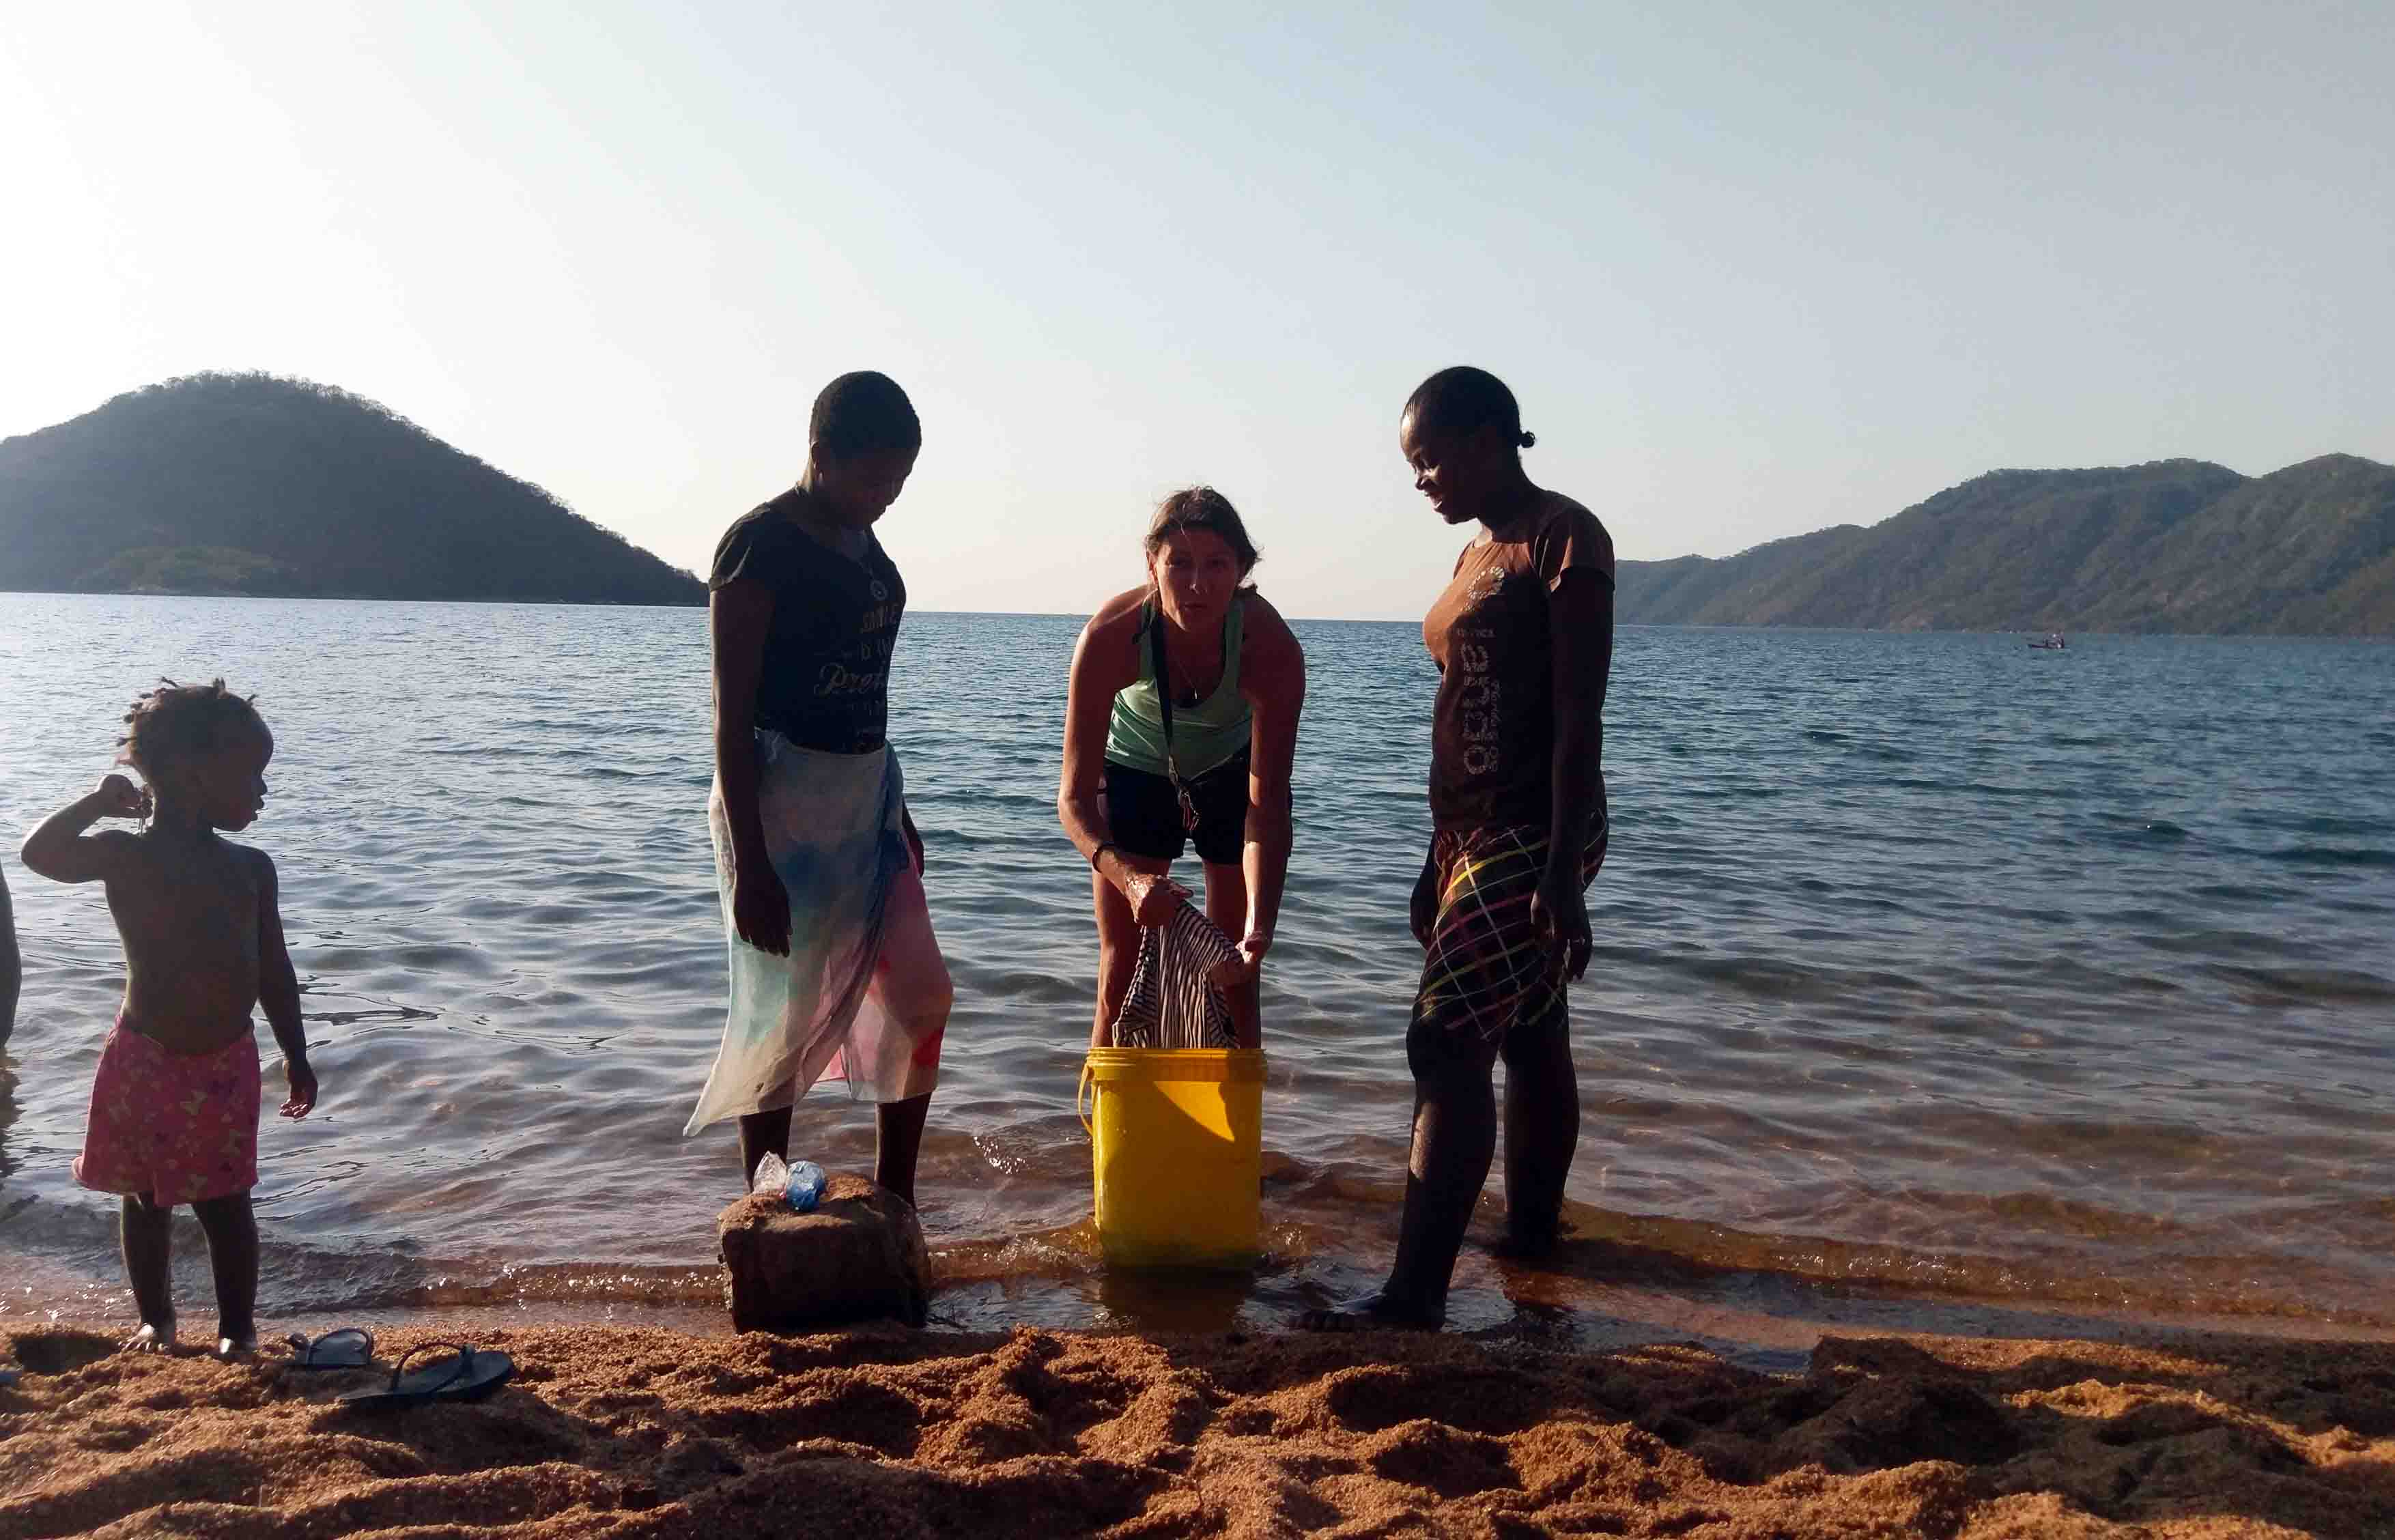 This is Lake Malawi in Malawi and that´s how the locals do their laundry in the Lake. Two locals showed me how they do it.